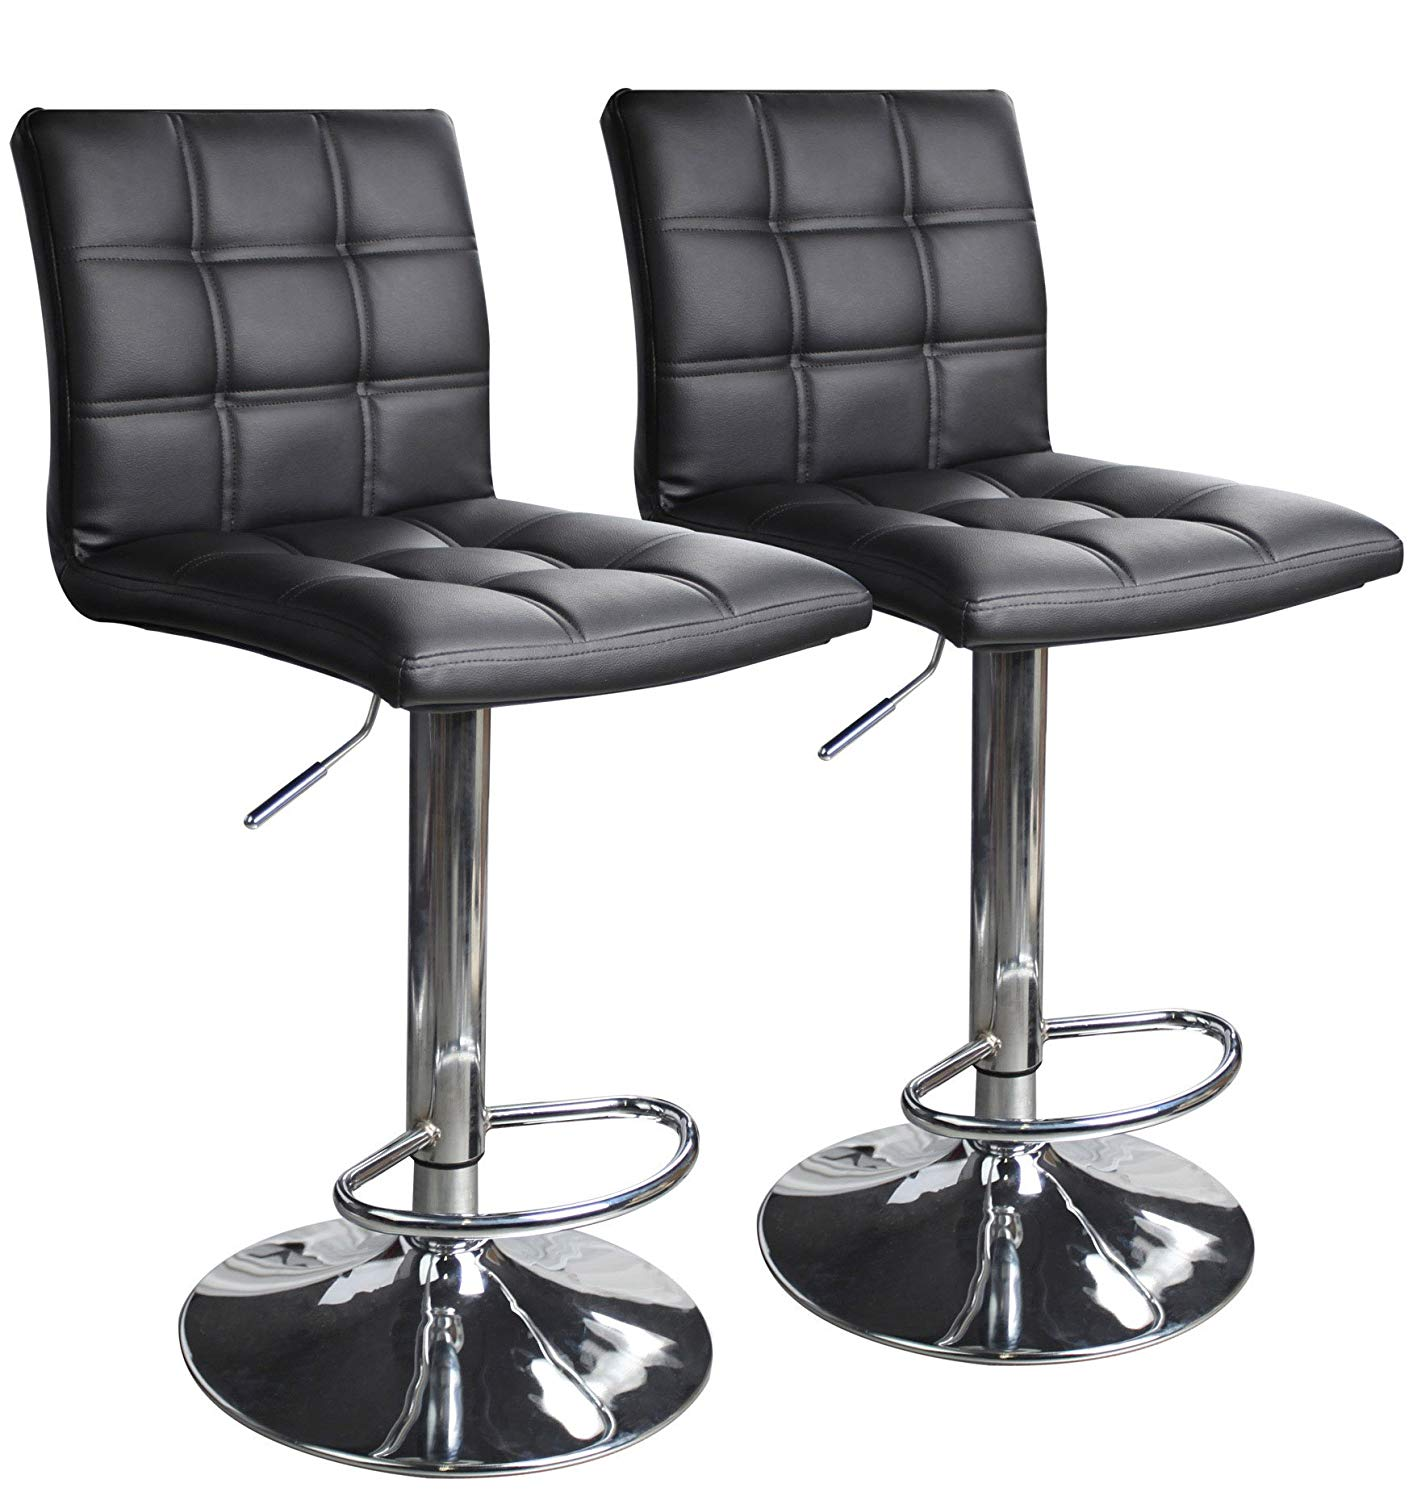 adjustable swivel bar stool with back amazon.com: modern square adjustable bar stool made of synthetic leather with back, set by FQMQUAU